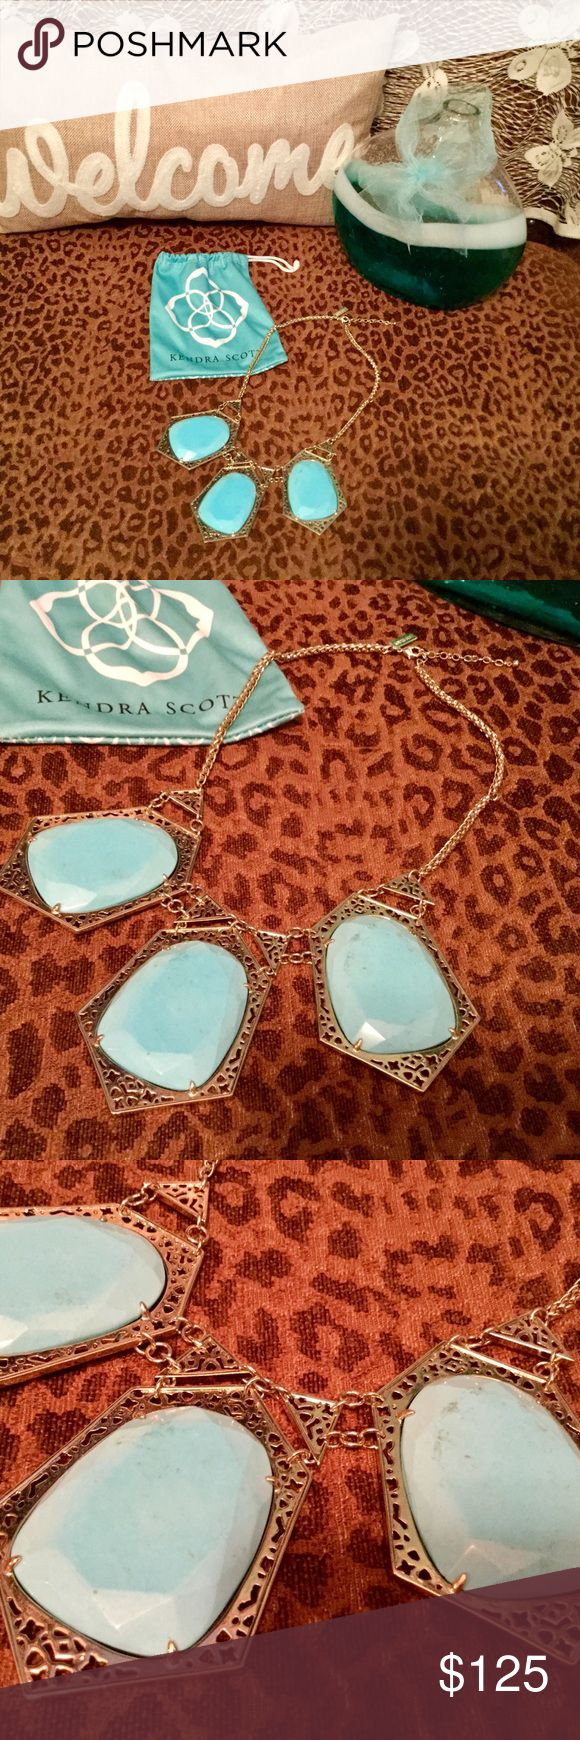 """Kendra Scott Necklace! Kendra Scott absolutely gorgeous Nadeline bib statement necklace in turquoise. 18"""" with 2"""" extender. Retired piece, hard to find. In perfect condition! Kendra Scott Jewelry"""